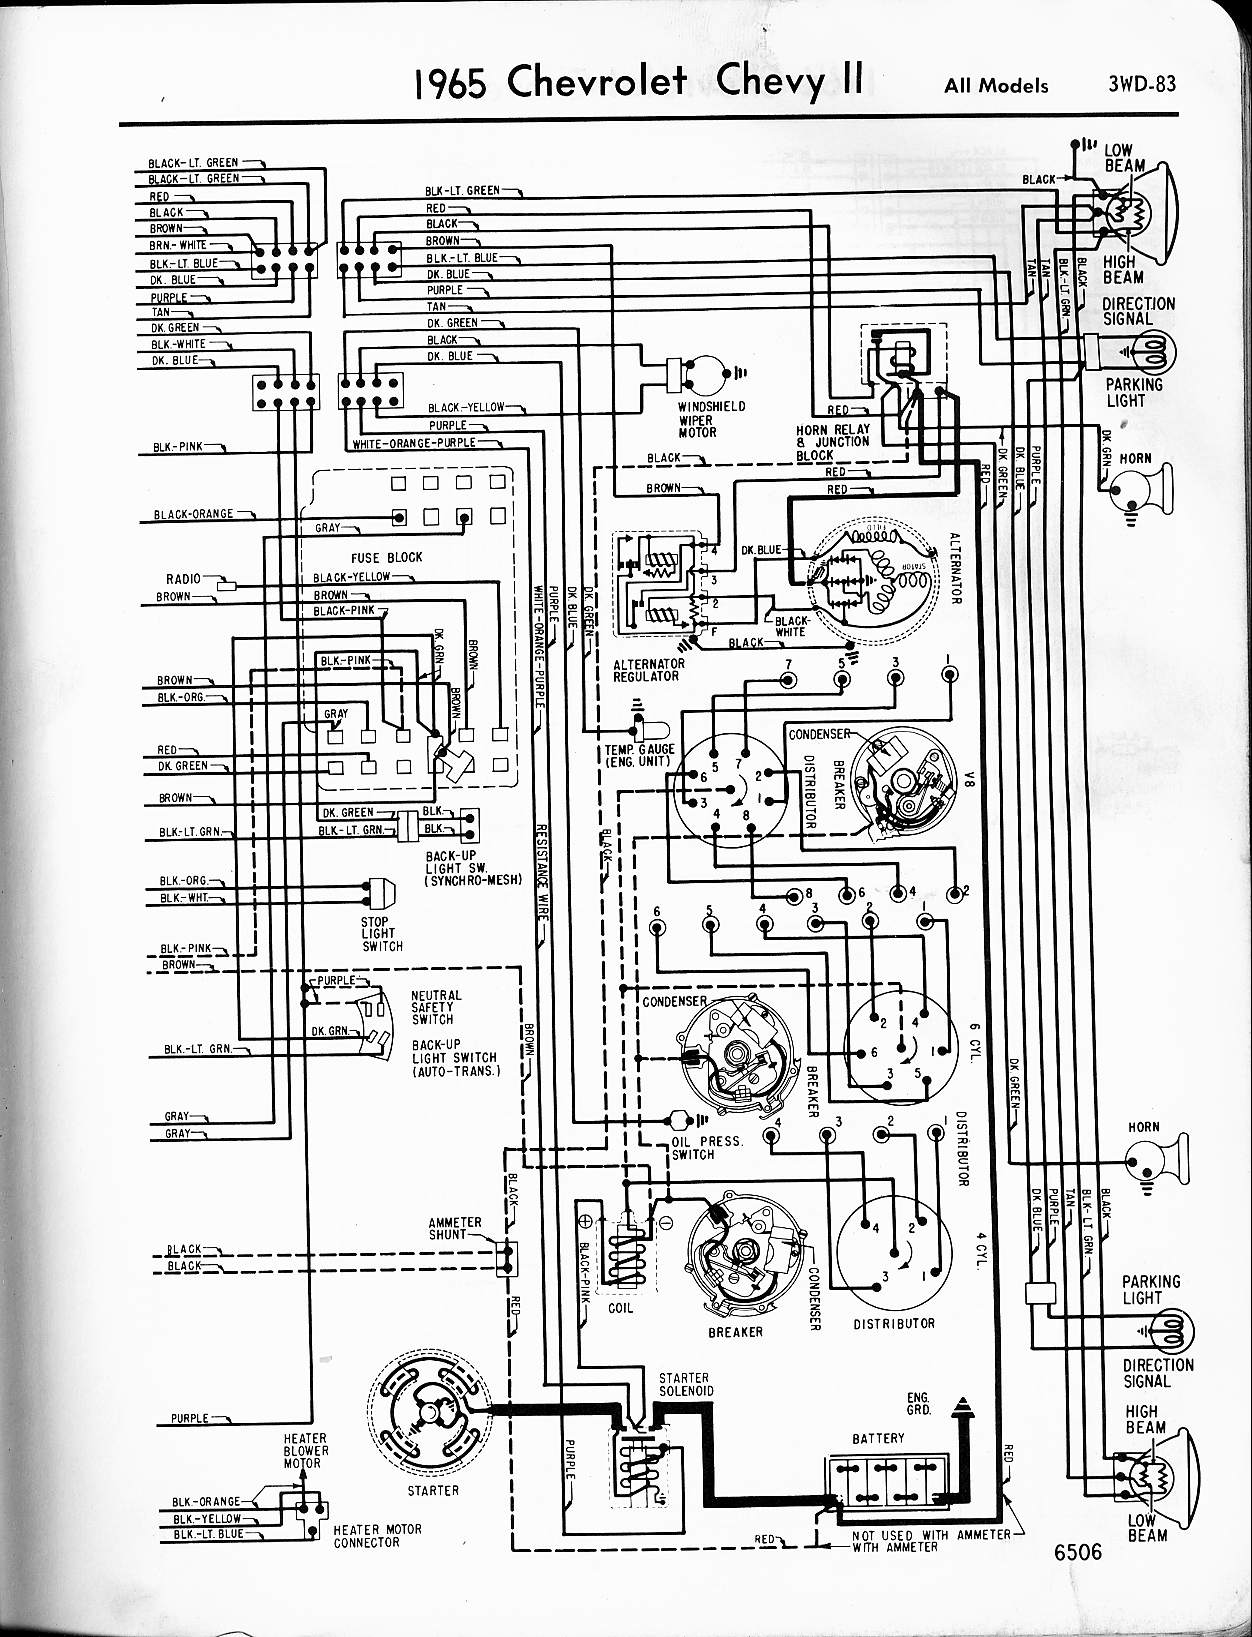 Chevy Diagrams 1970 Chevrolet Wiring Diagram 1965 Chevrolet Wiring Diagram